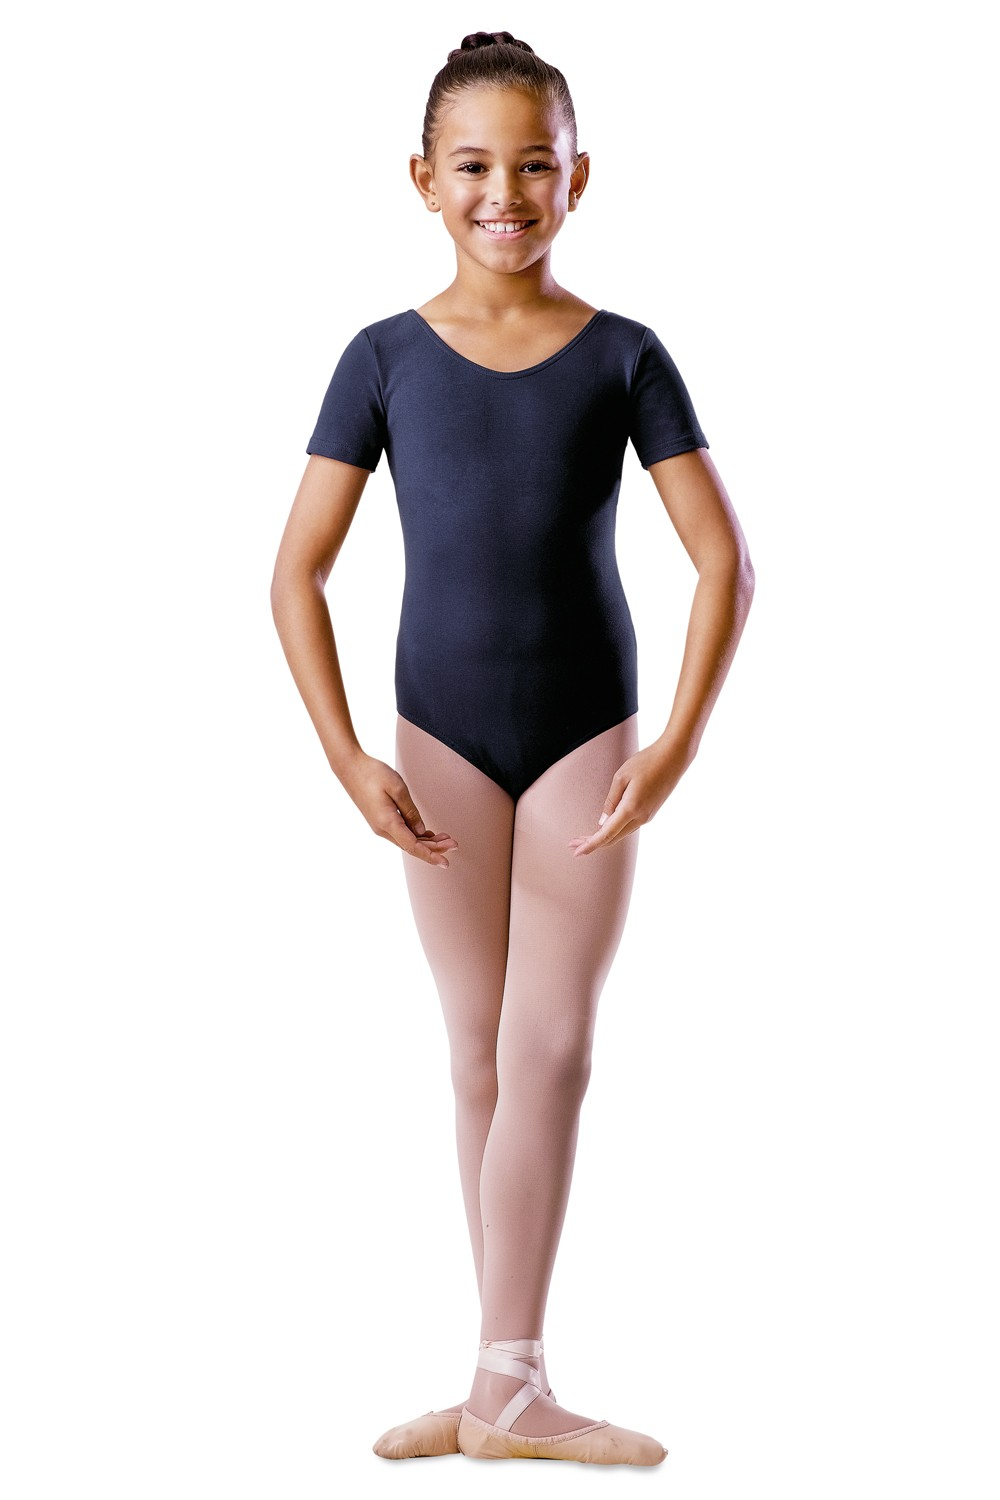 Childrens Short Sleeve Leotard Children's Dance Uniforms